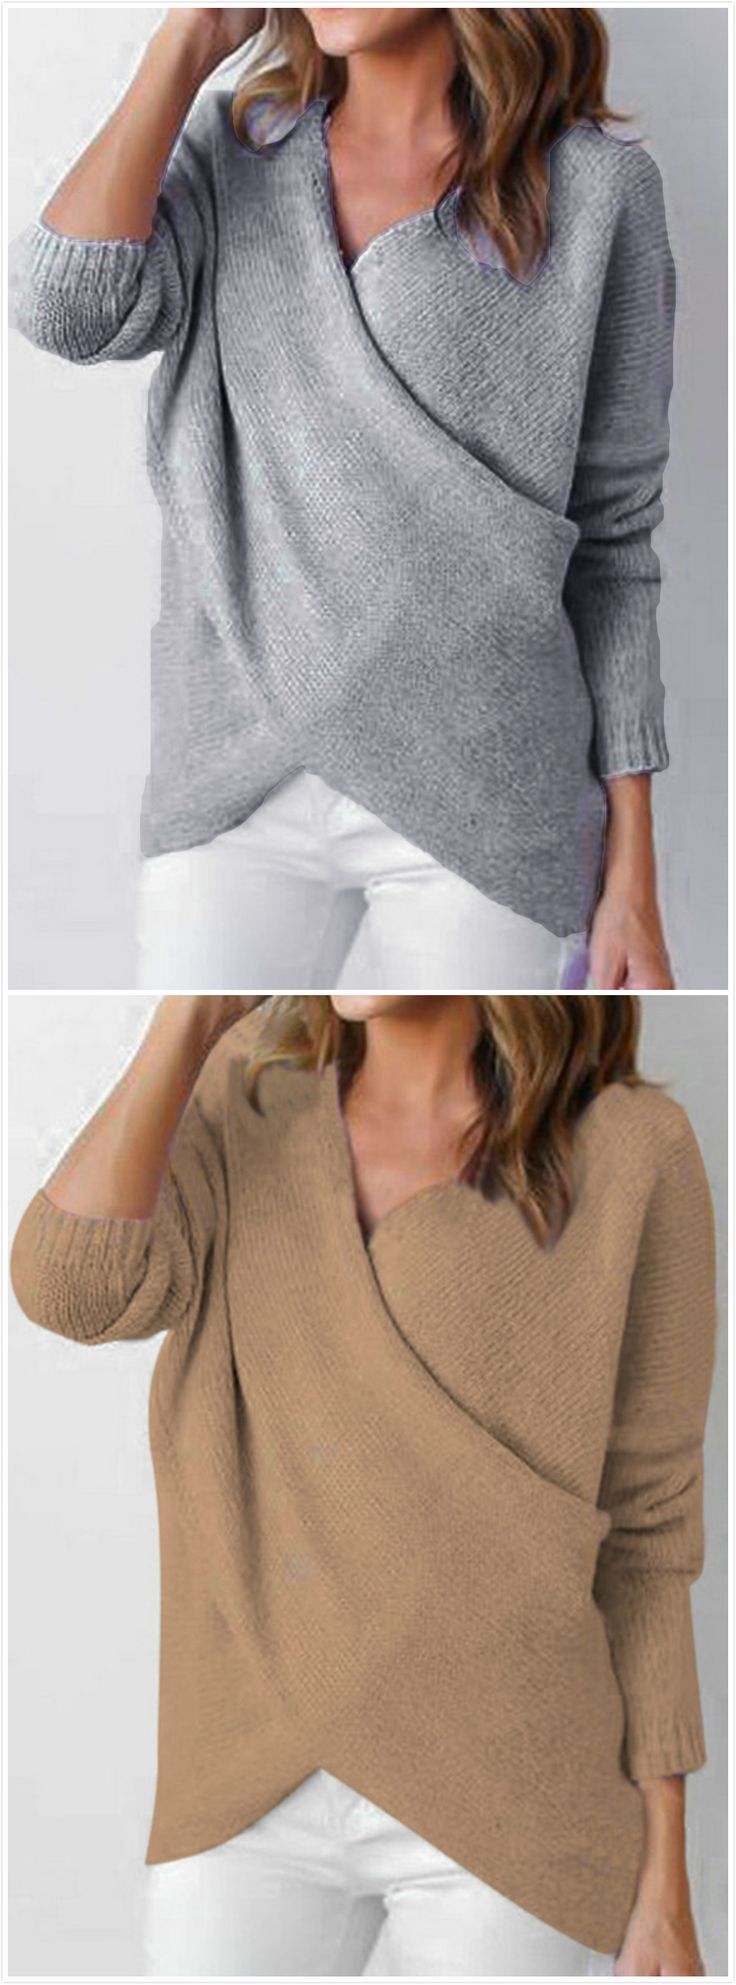 1116 Best Style Images On Pinterest Feminine Fashion For Women Mooi Printing Premium Sweater Top Garden Bunny L V Neck Long Sleeve Solid Splicing Pullover Novashecom